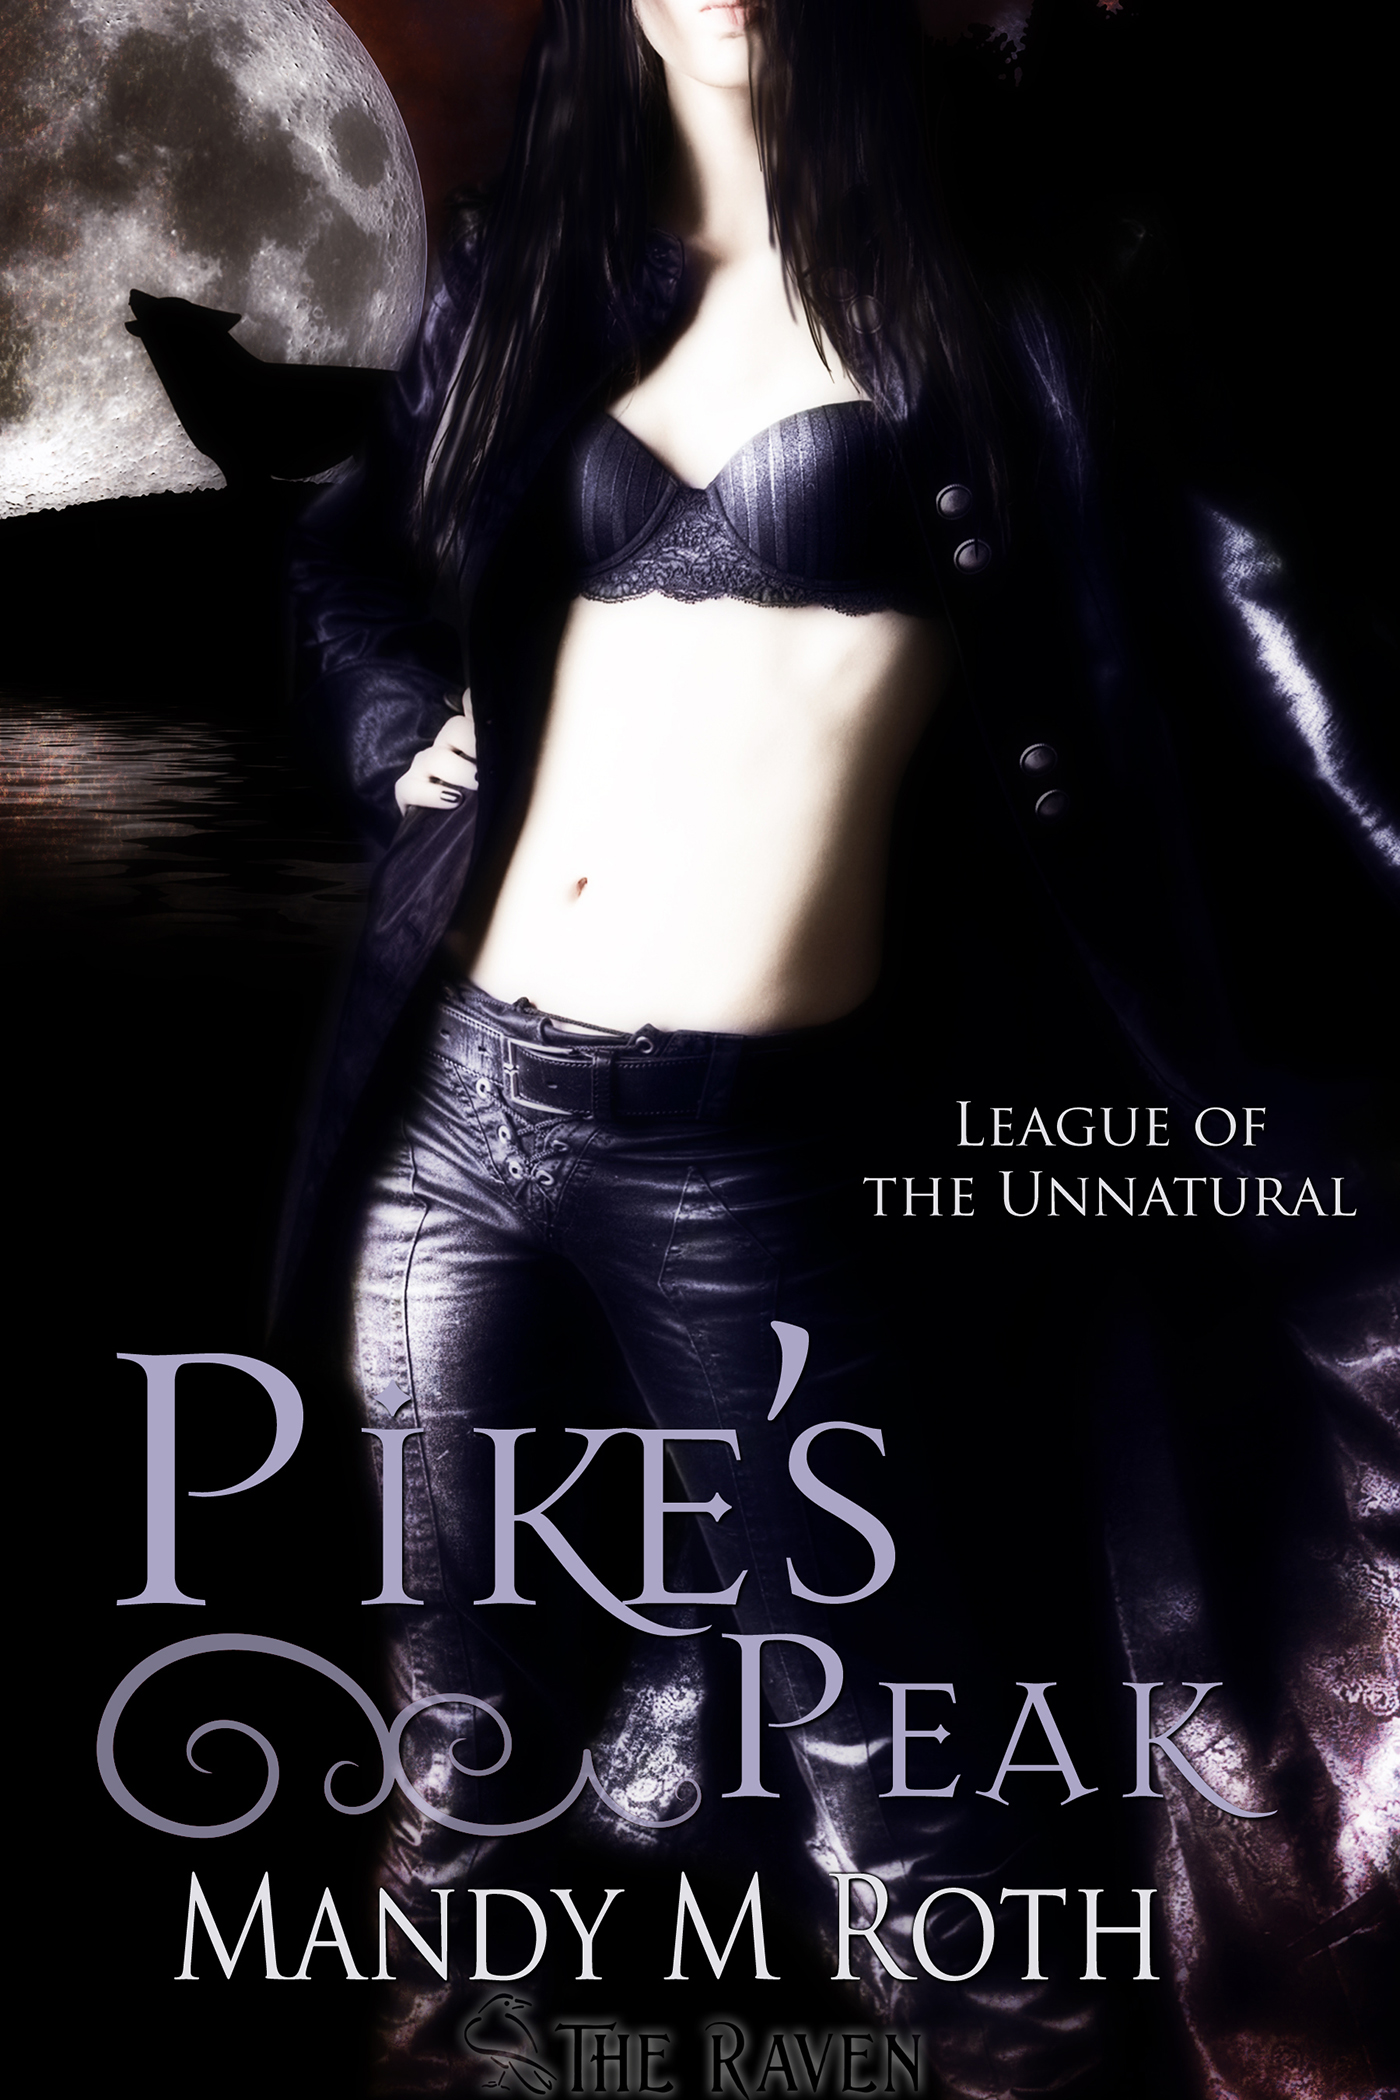 Mandy M. Roth - Pike's Peak (League of the Unnatural)